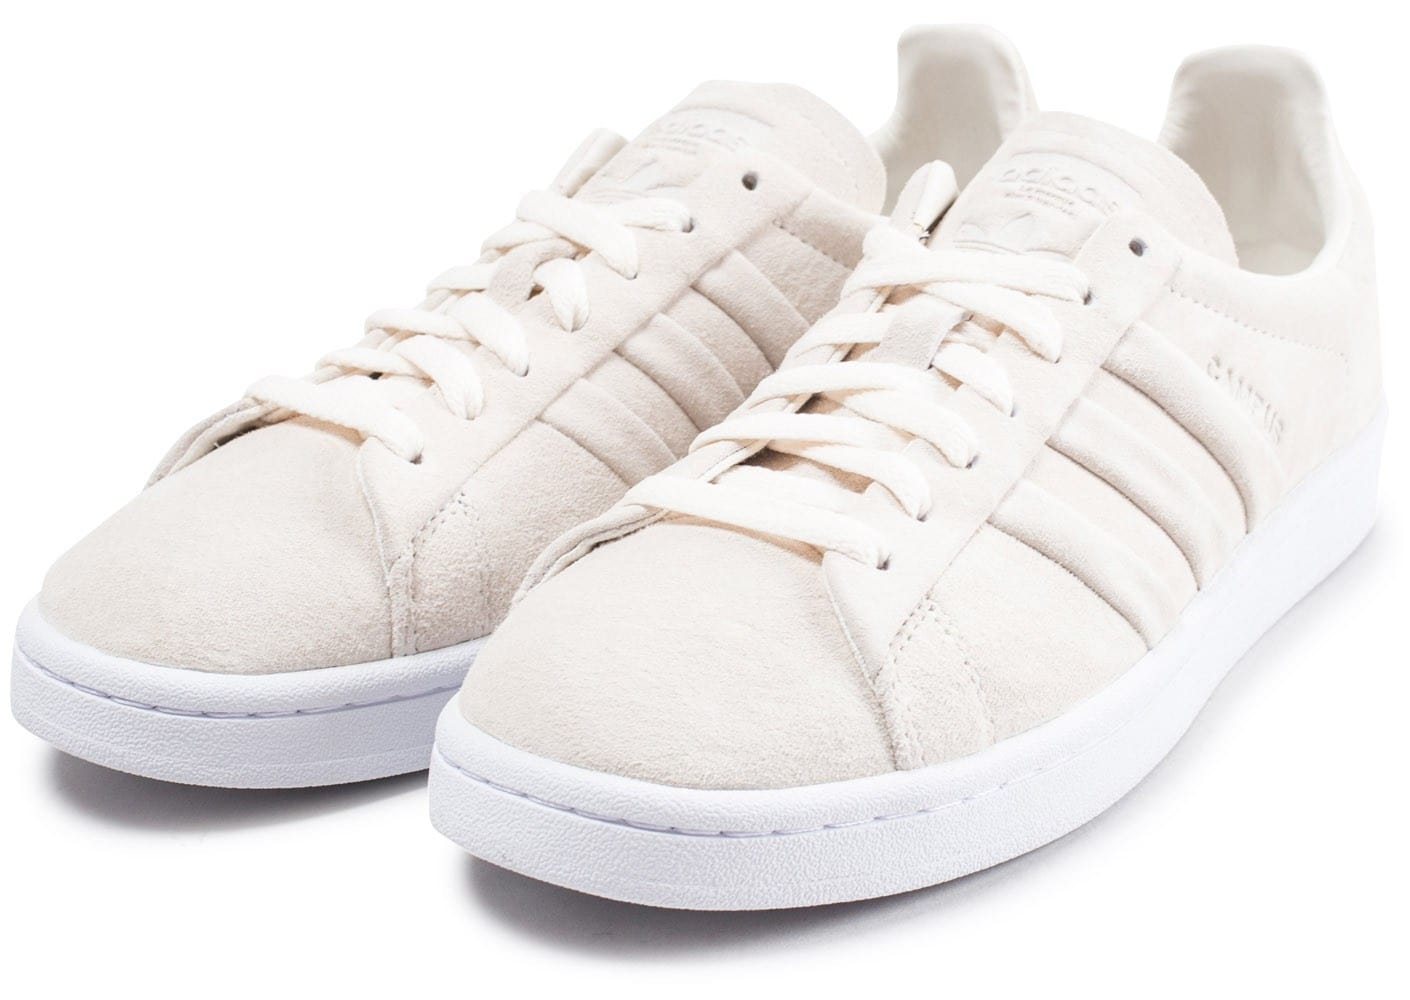 buy online e2937 f63dc ... Chaussures adidas Campus Stitch and Turn beige vue intérieure ...